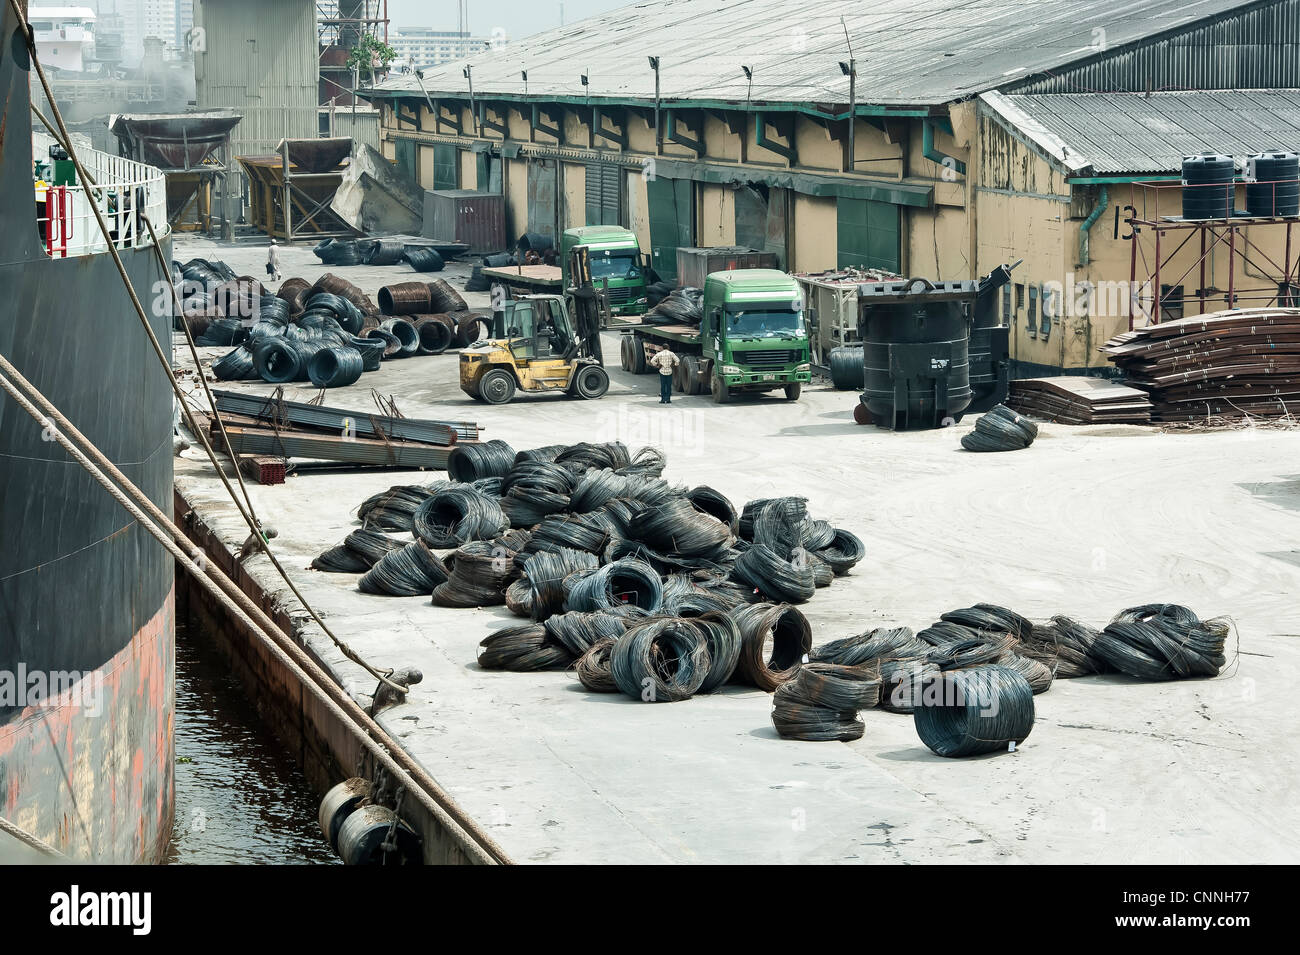 Bulk cargo on a dock in Nigeria - Stock Image